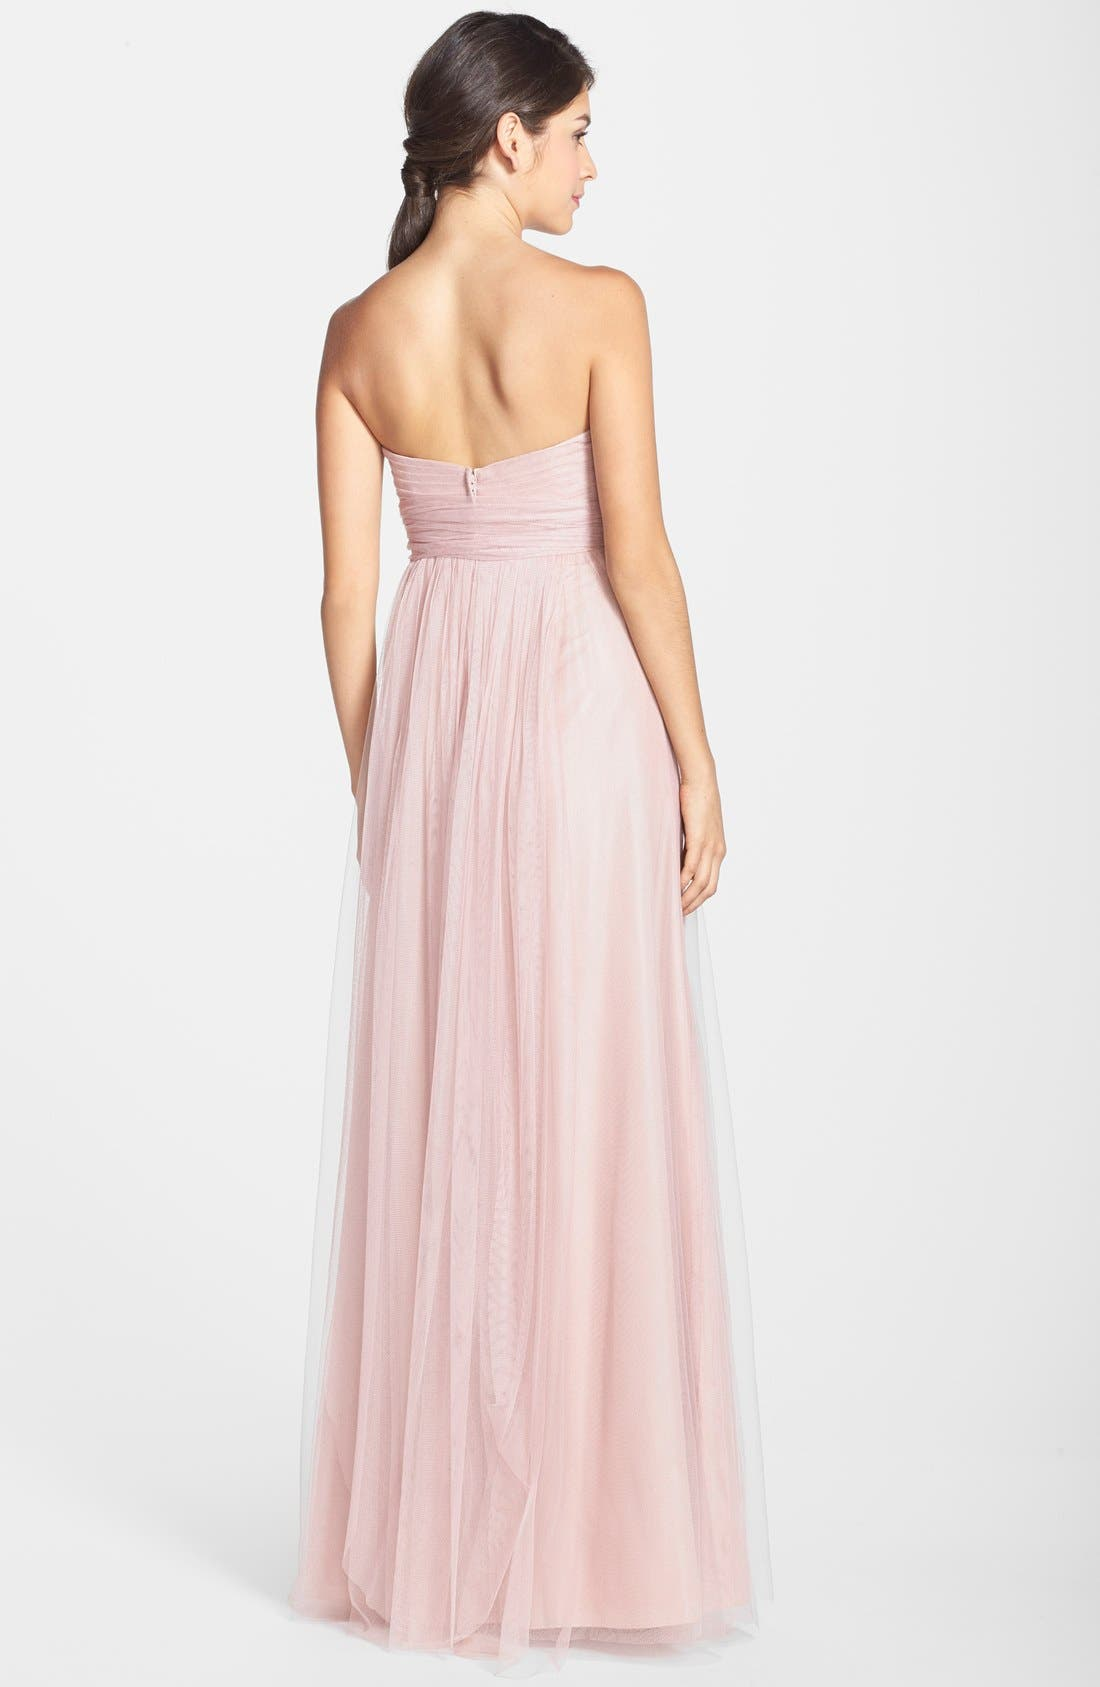 Annabelle Convertible Tulle Column Dress,                             Alternate thumbnail 152, color,